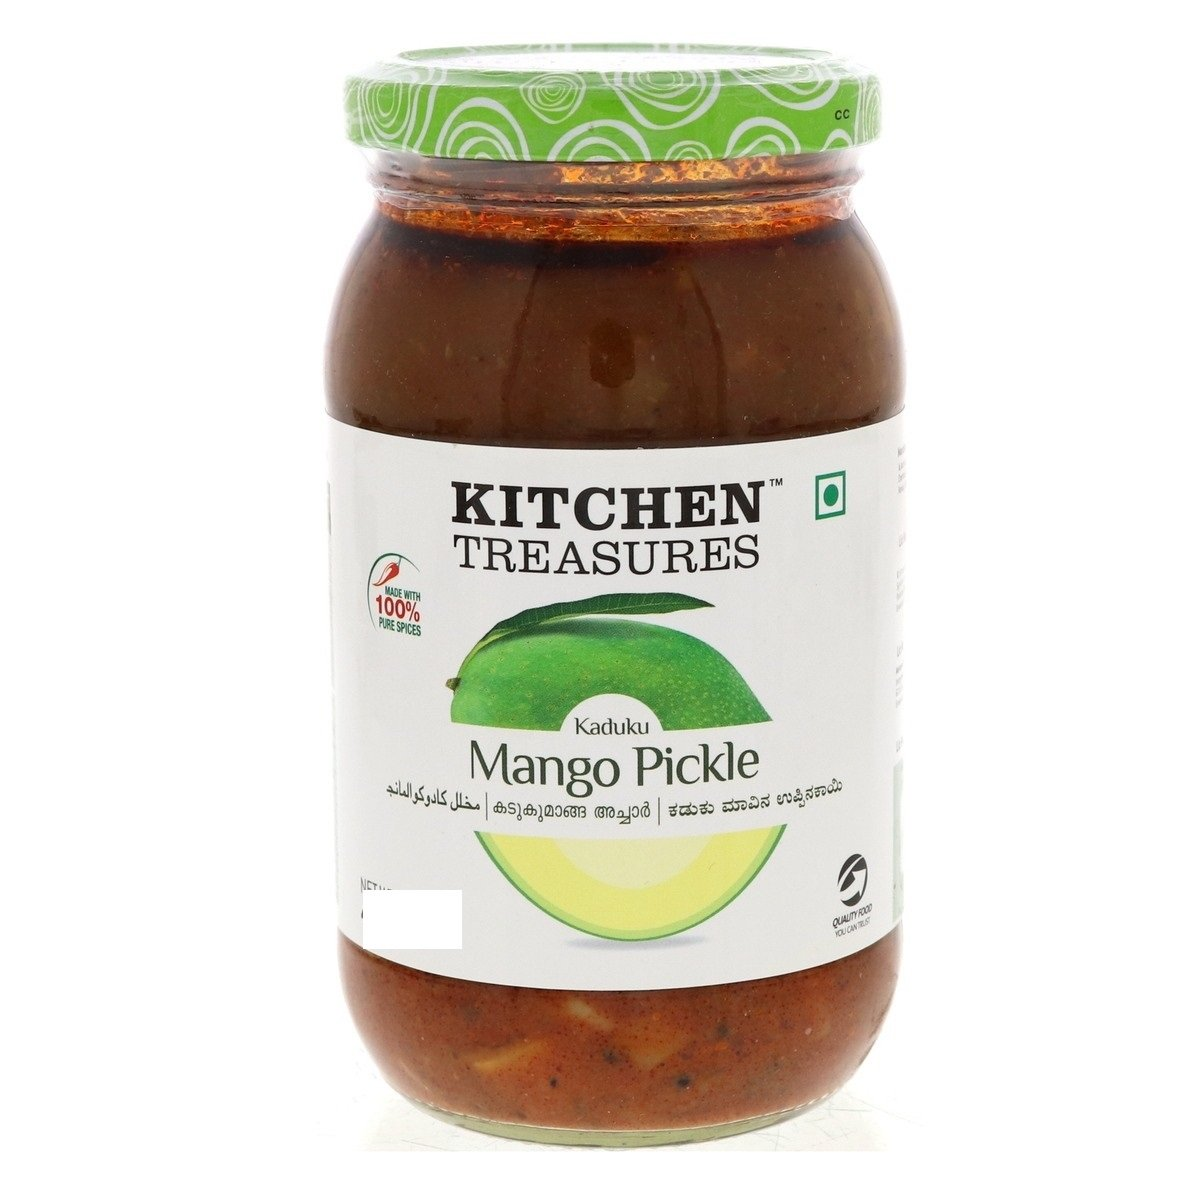 KITCHEN TREASURES KADUKU MANGO PICKLE 150G